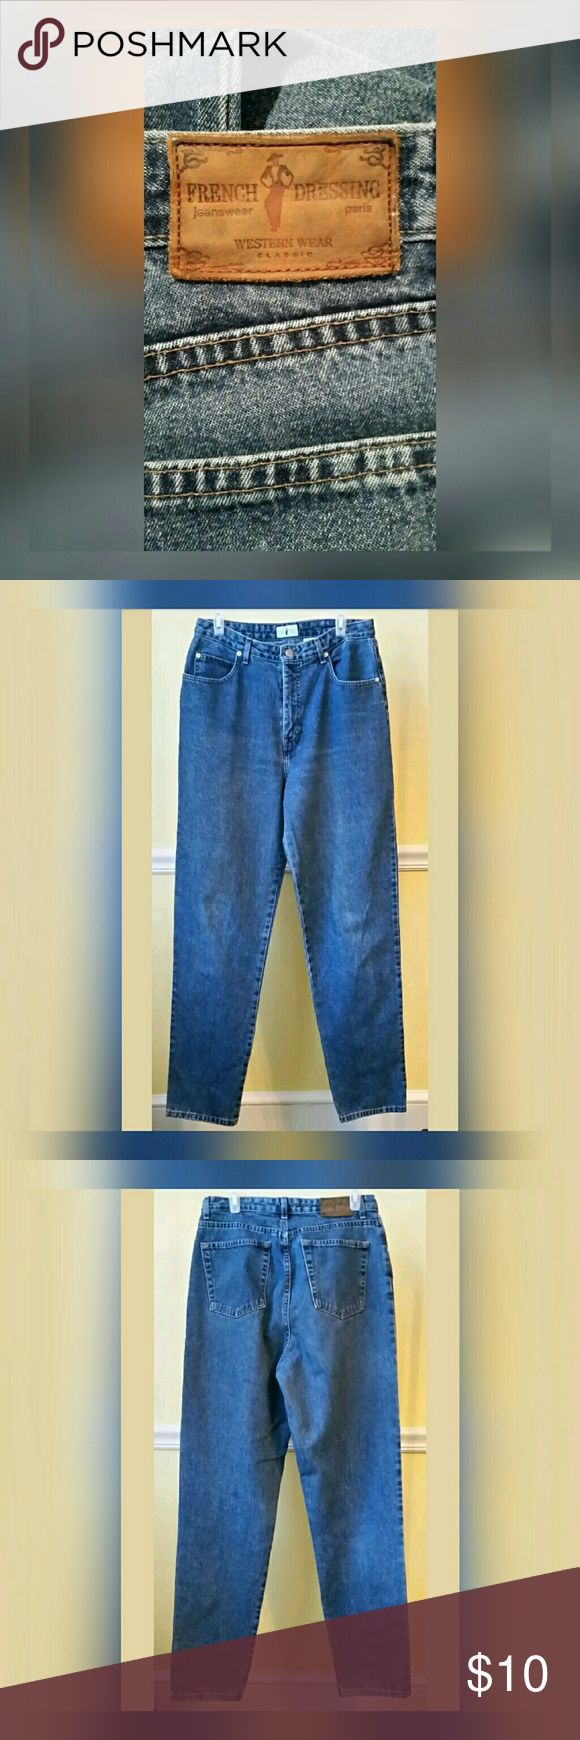 """French Dressing Jeans French Dressing High Rise Contour Western Wear Jeans  Medium Wash   All measurements taken laying flat.  Waist-15.75"""" across  Rise-12.75""""  Inseam-33""""  Leg opening-7"""" across French Dressing Jeans"""